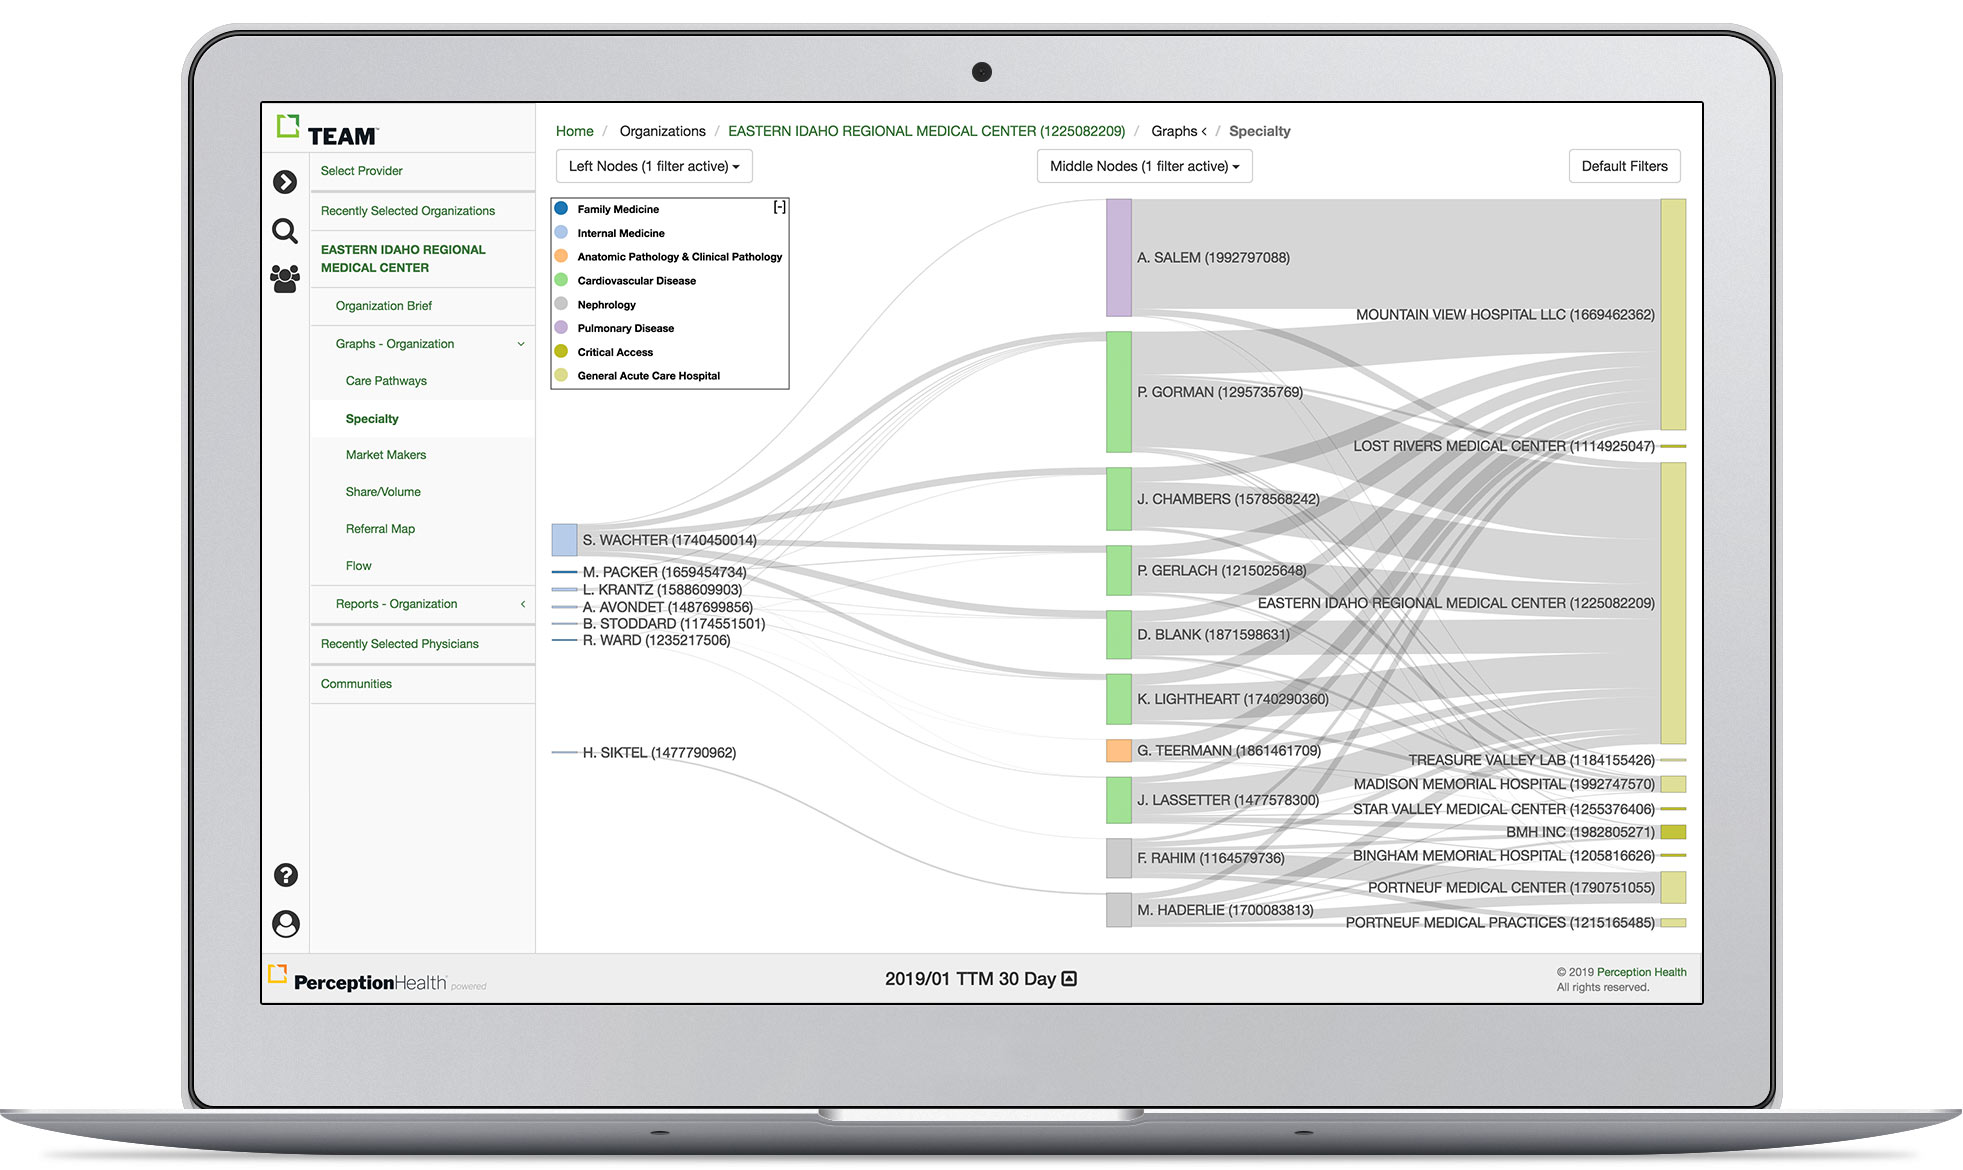 TEAM Platform - The Specialty graph shows the flow of visits from primary care to specialists and then to hospitals.